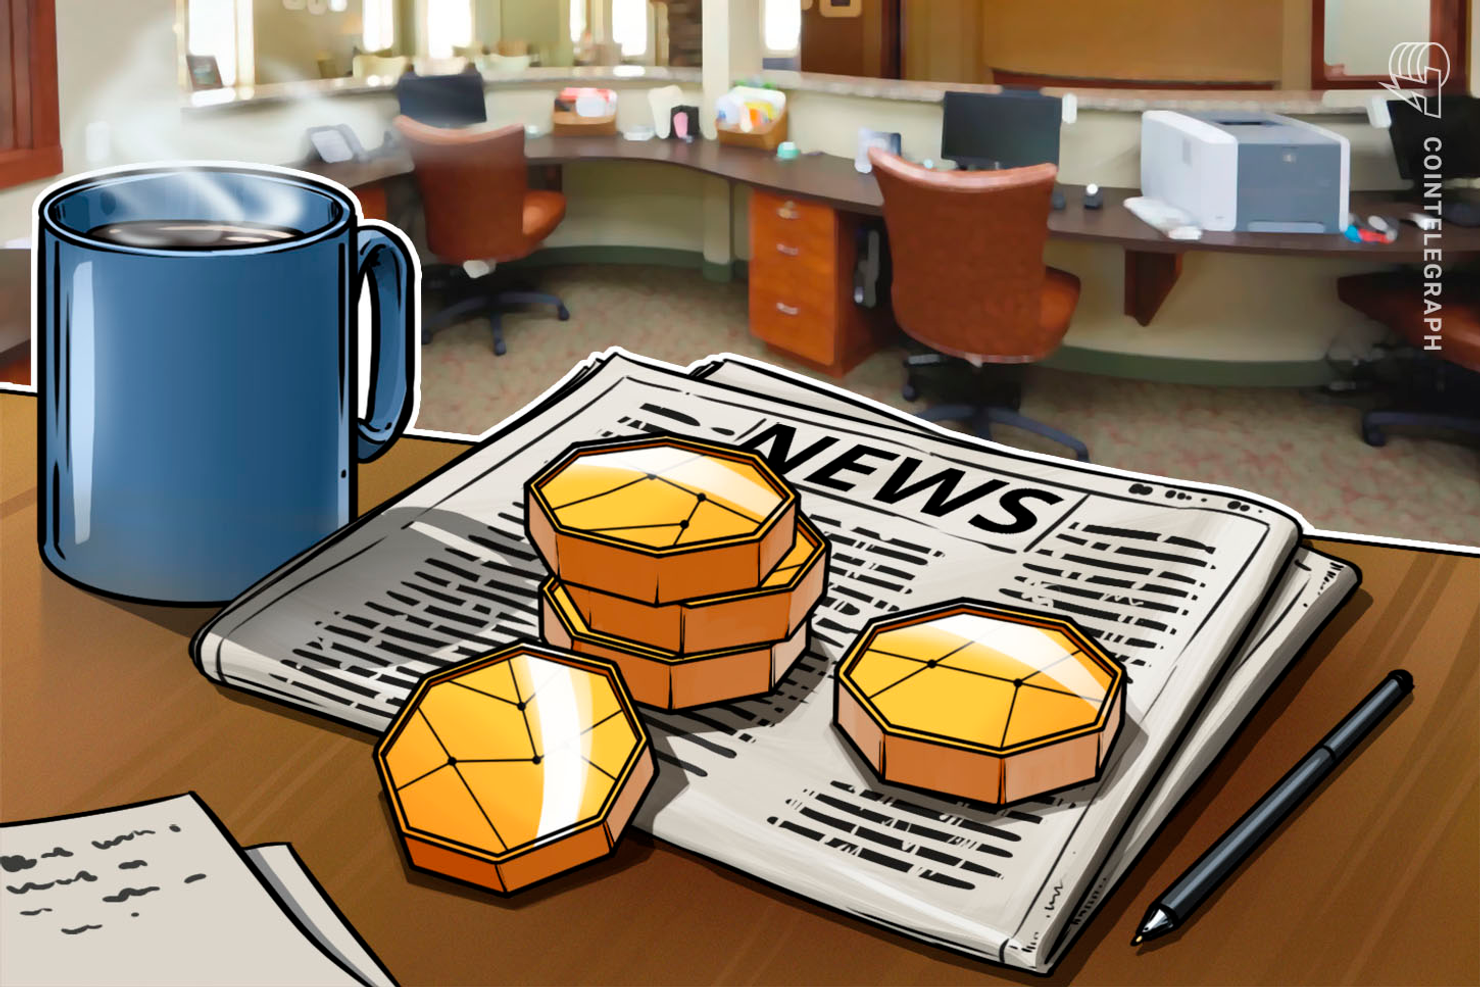 BNY Mellon to Act as Transfer Agent for Bitwise's Proposed Bitcoin ETF